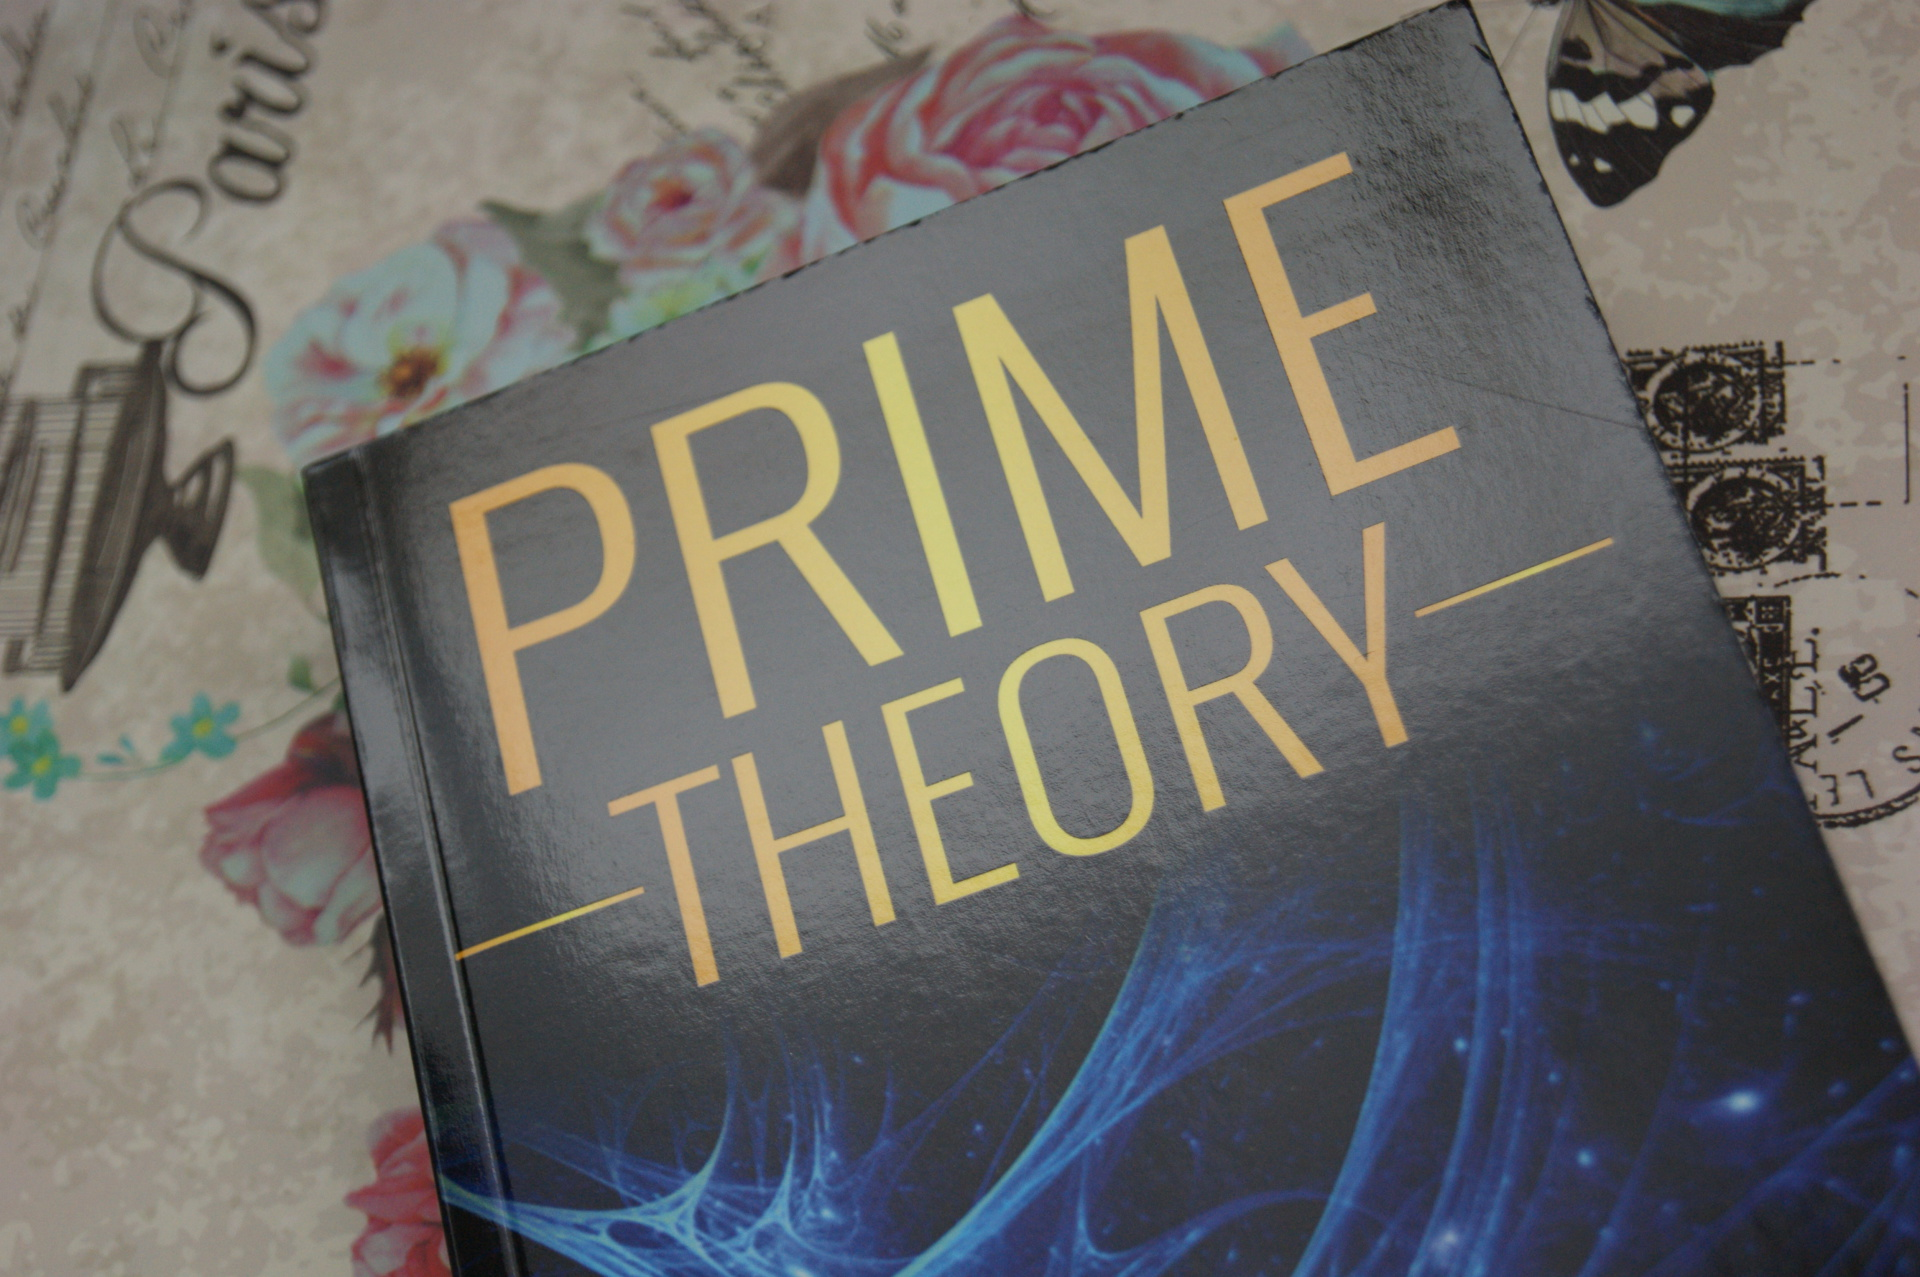 Prime Theory - Book Review